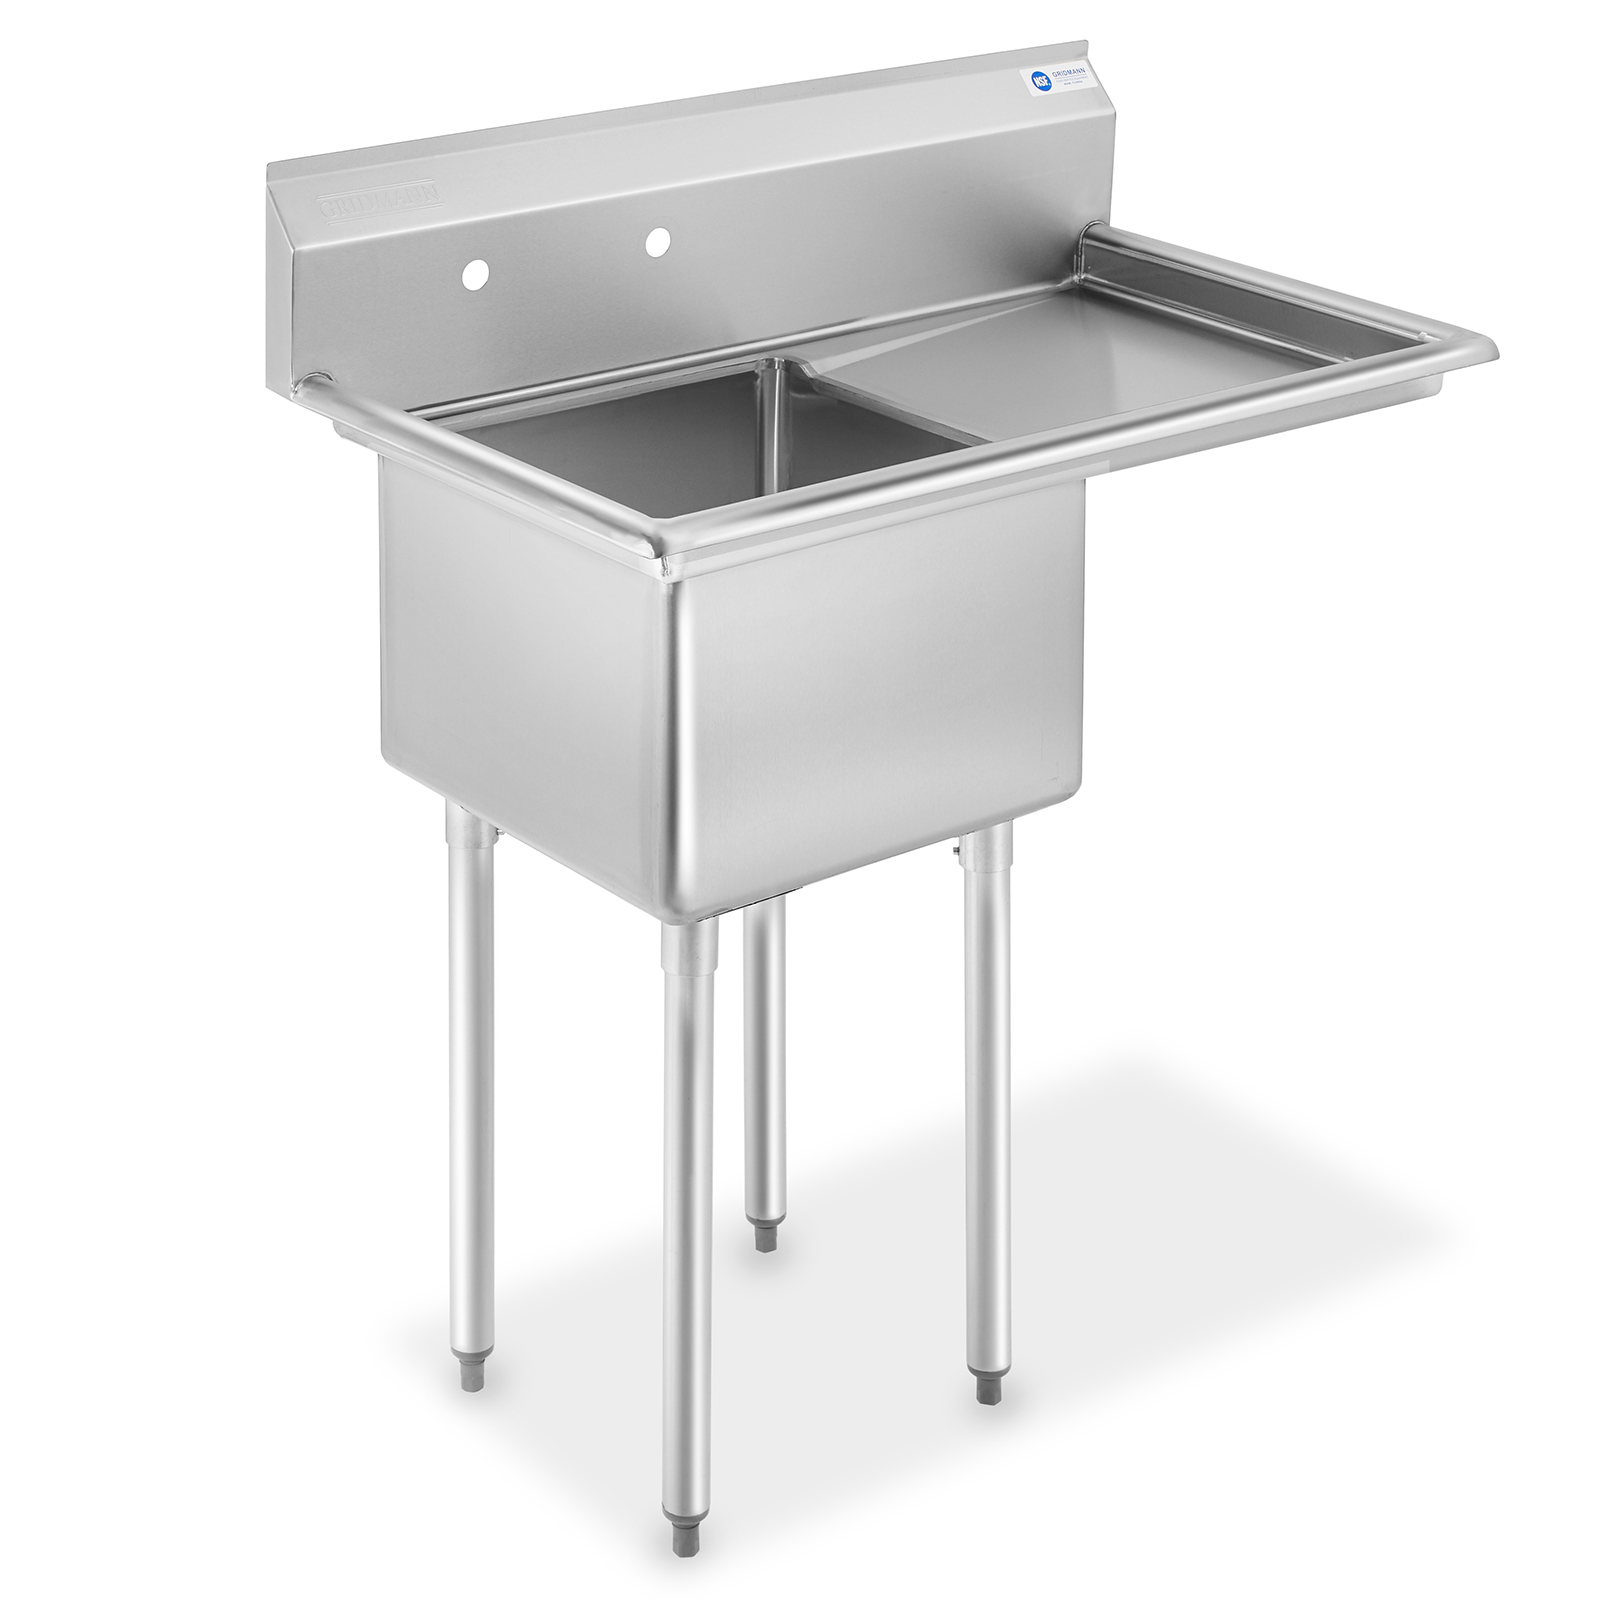 gridmann nsf stainless steel 18 single bowl commercial kitchen sink with right drainboard 12 in deep walmart com